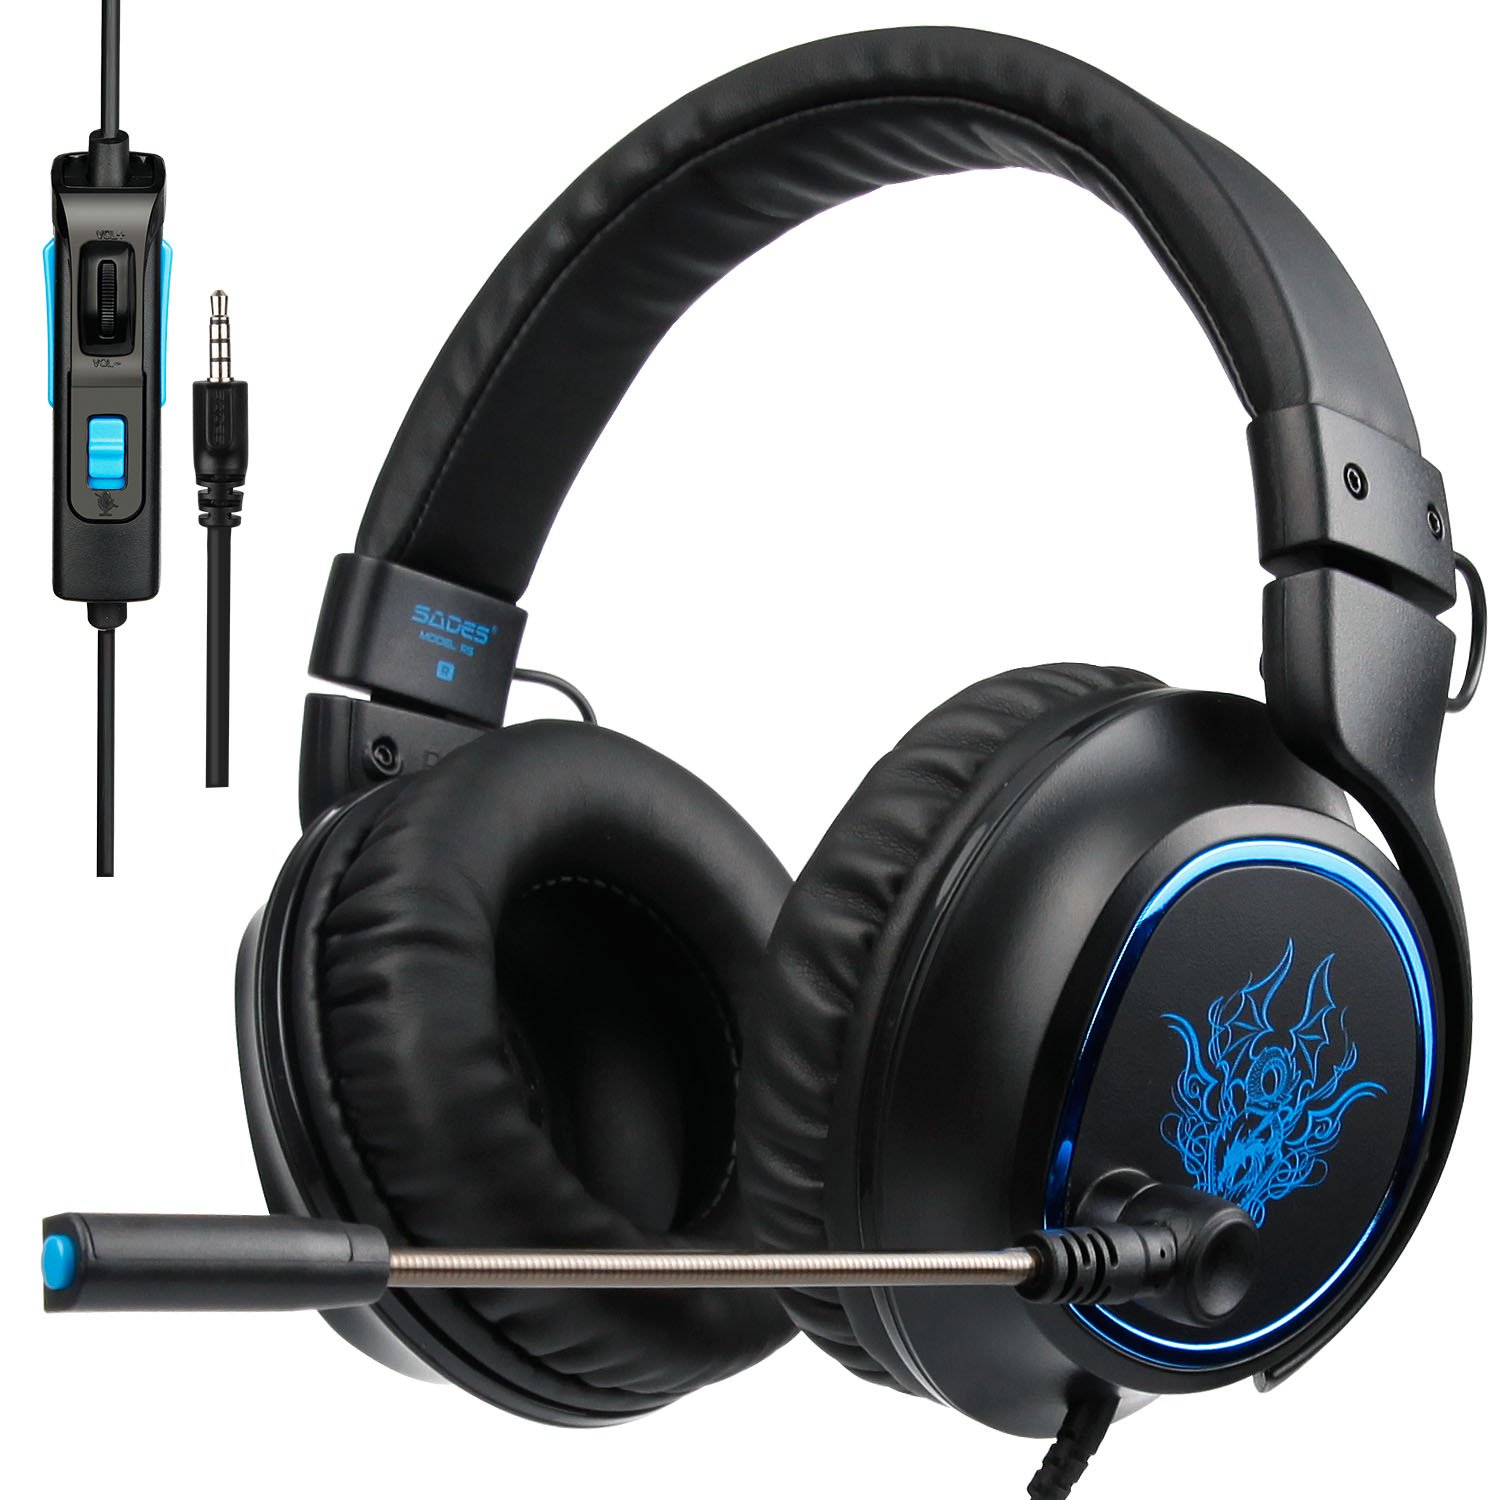 SADES Gaming Headset Headphones Microphone